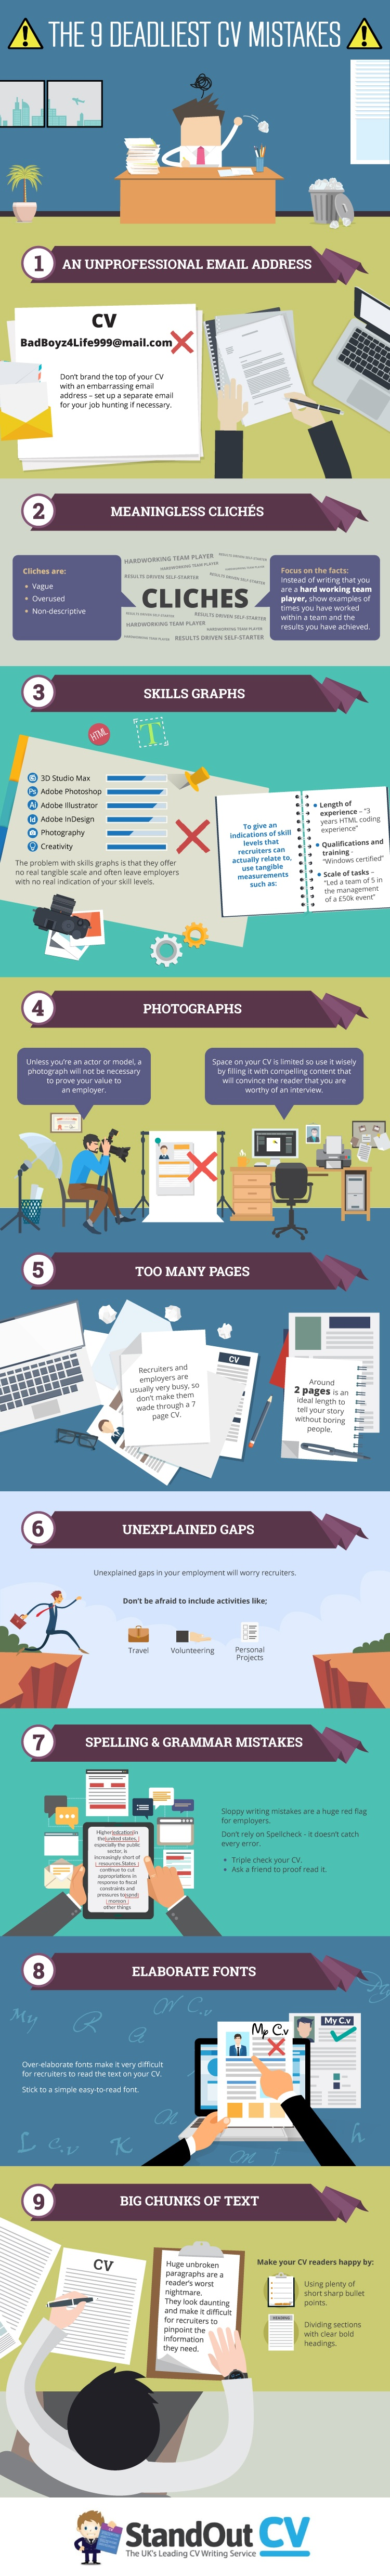 the 9 worst resume mistakes you can make how to avoid